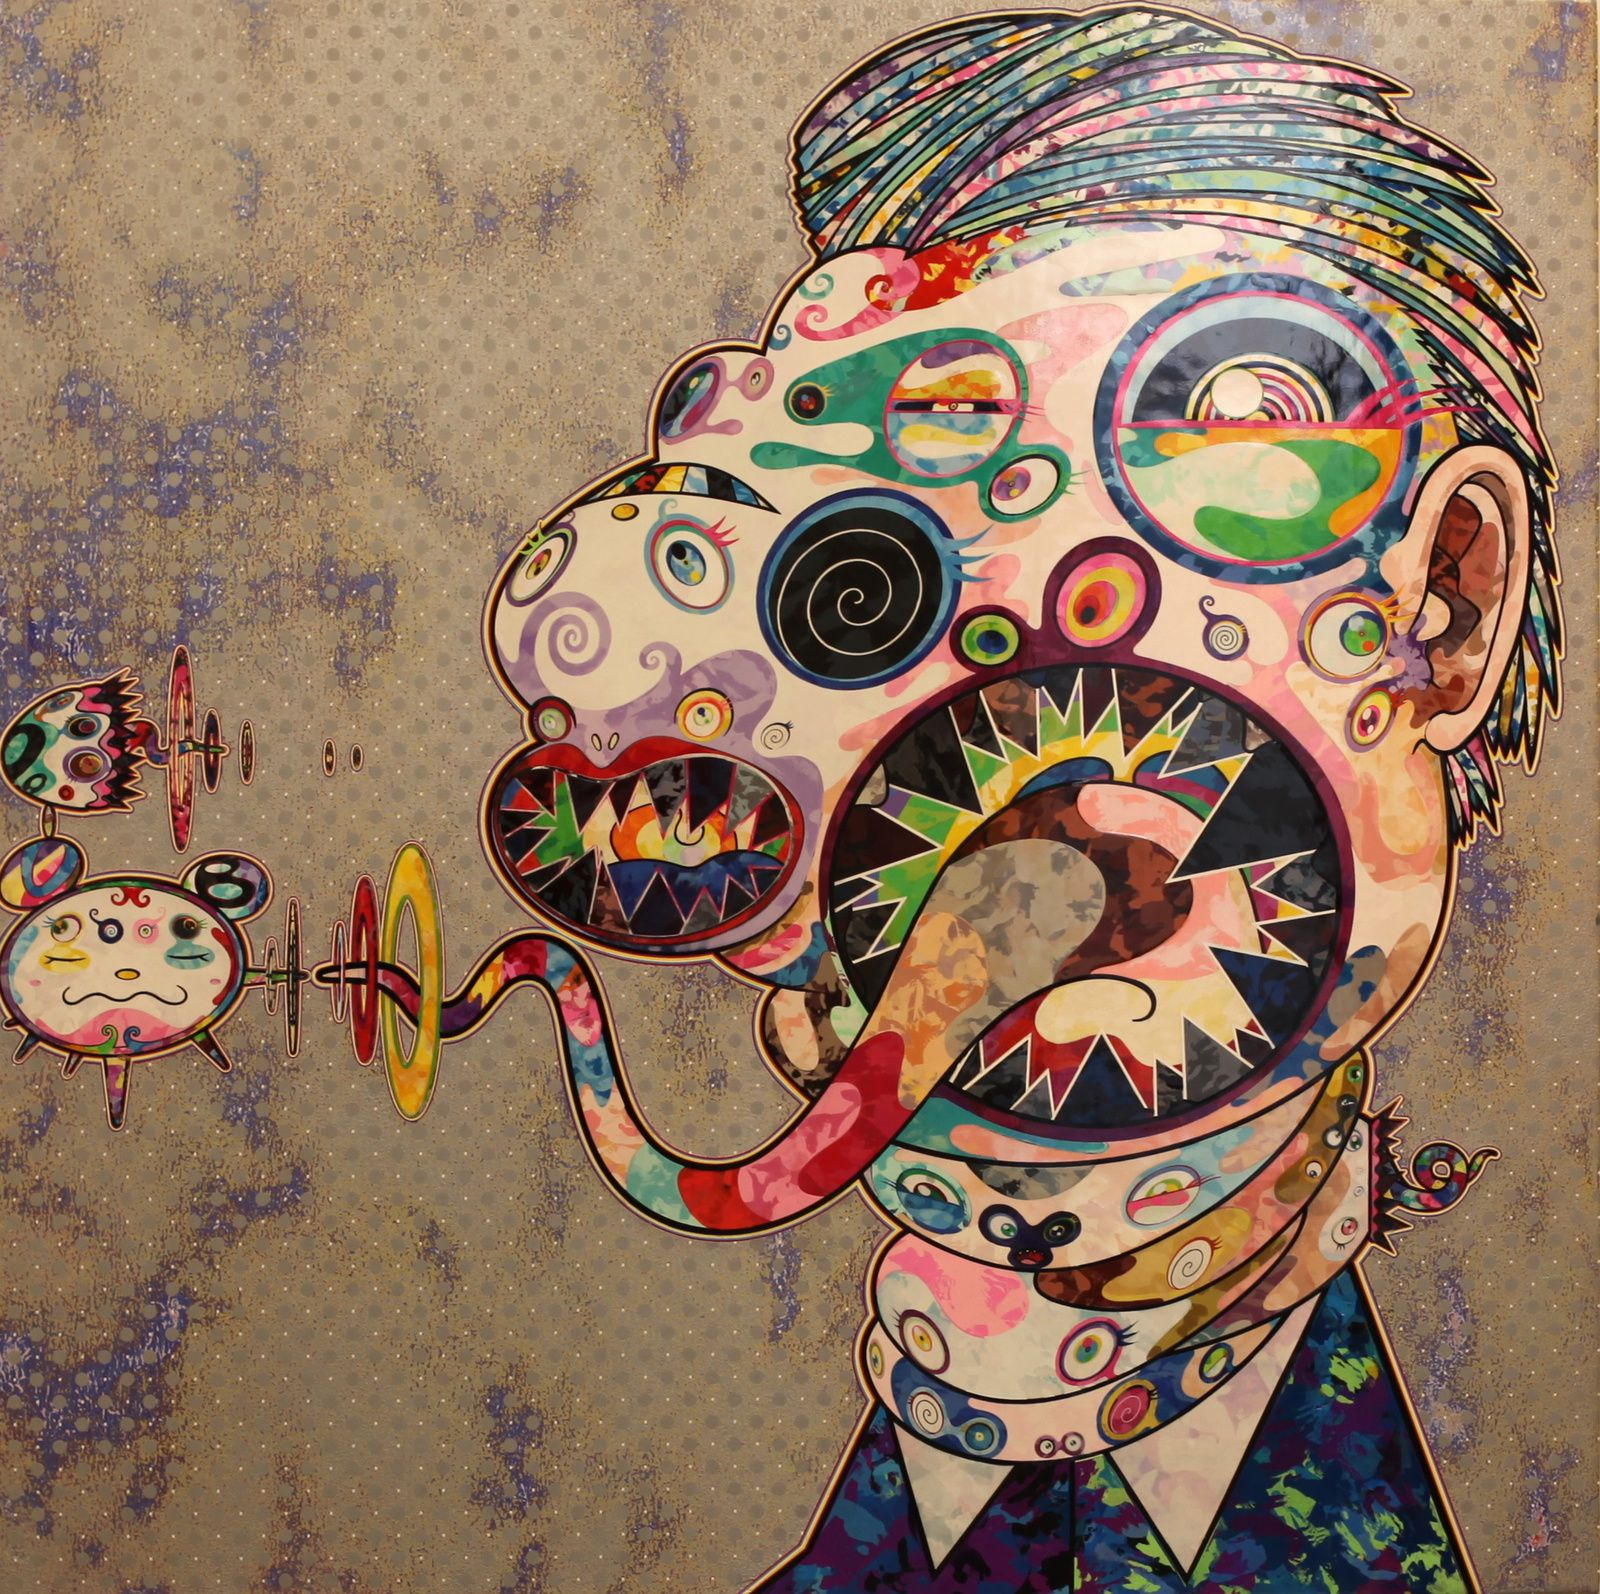 """Homage to Francis Bacon"", 2016 de Takashi MURAKAMI - Galerie Perrotin © Photo Éric Simon"